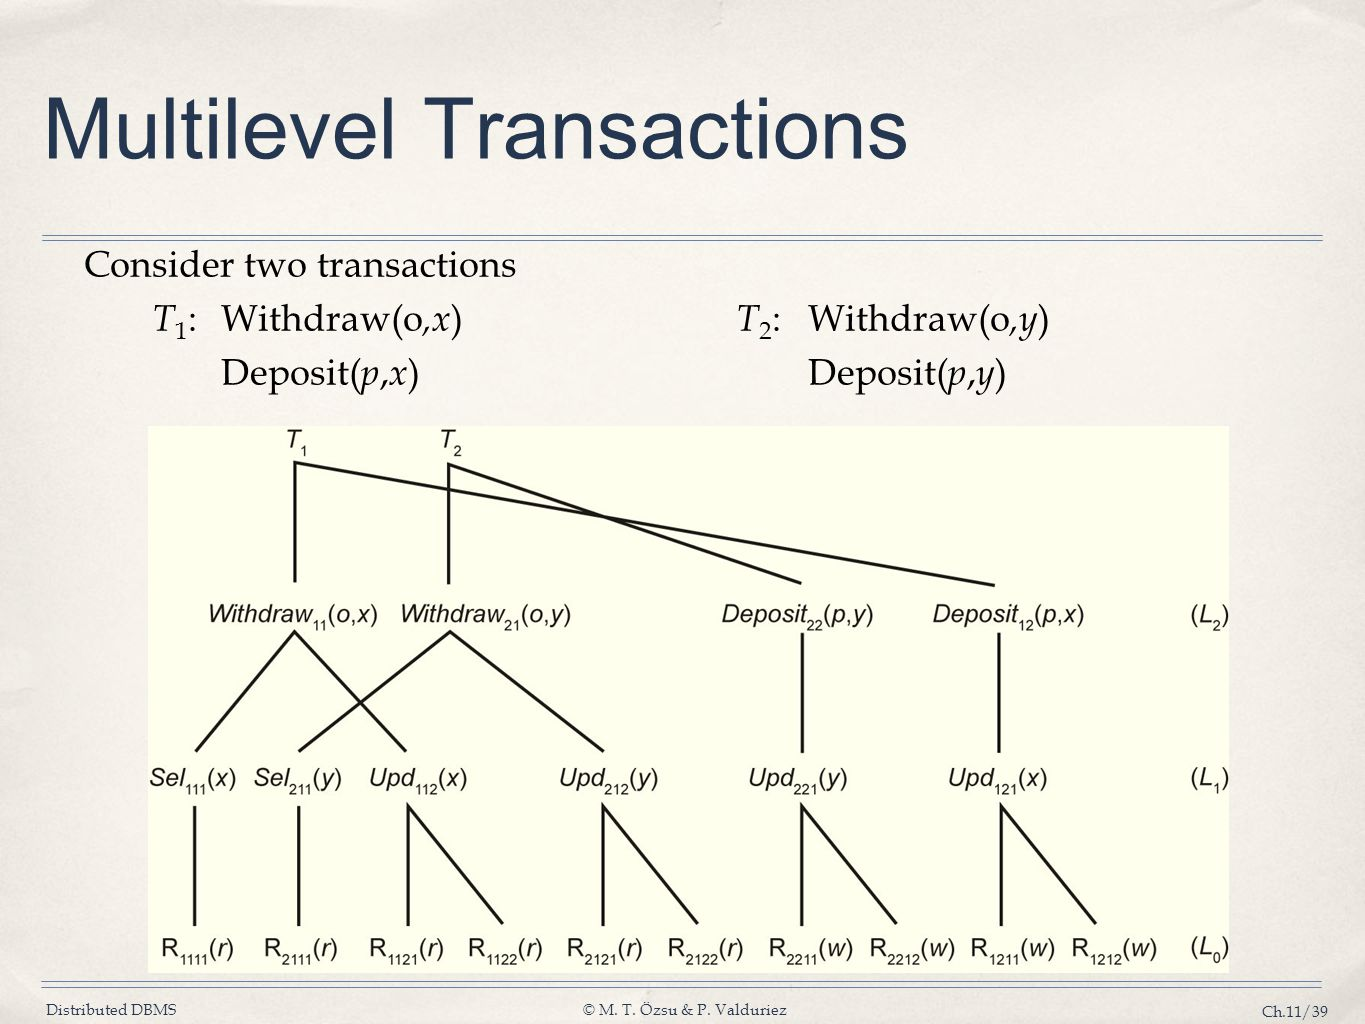 Multilevel Transactions